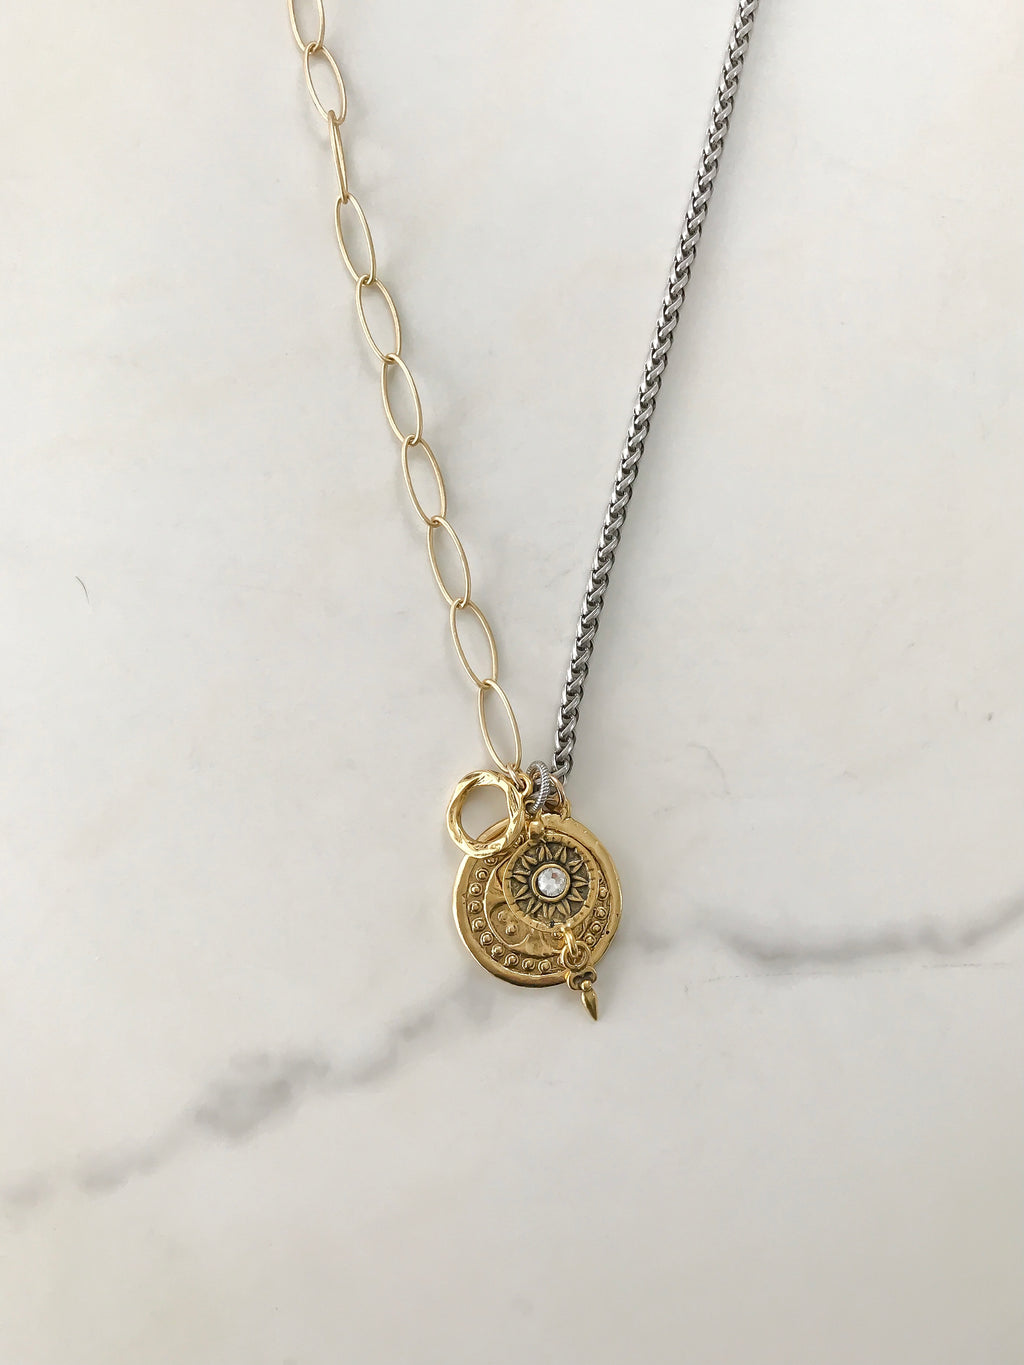 The Strength Coin Necklace